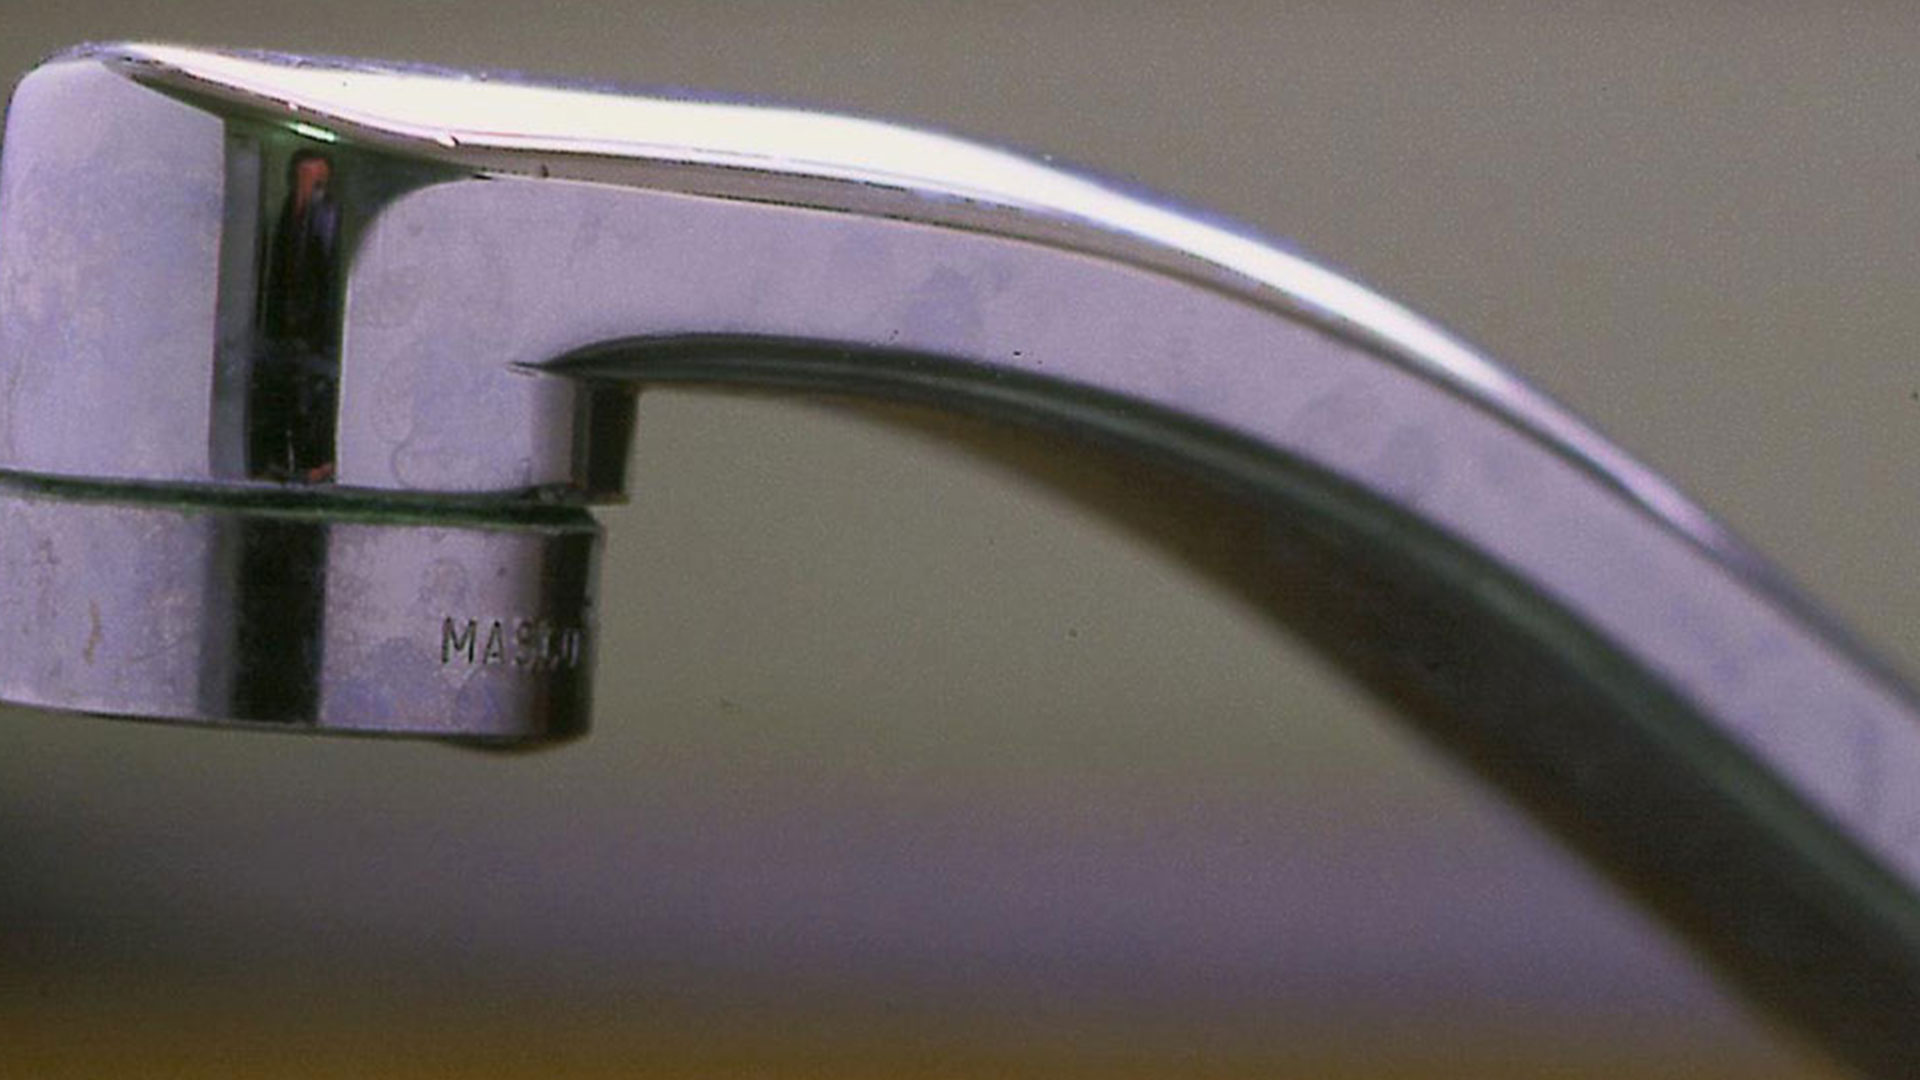 City of Sioux Falls asks people to limit water usage